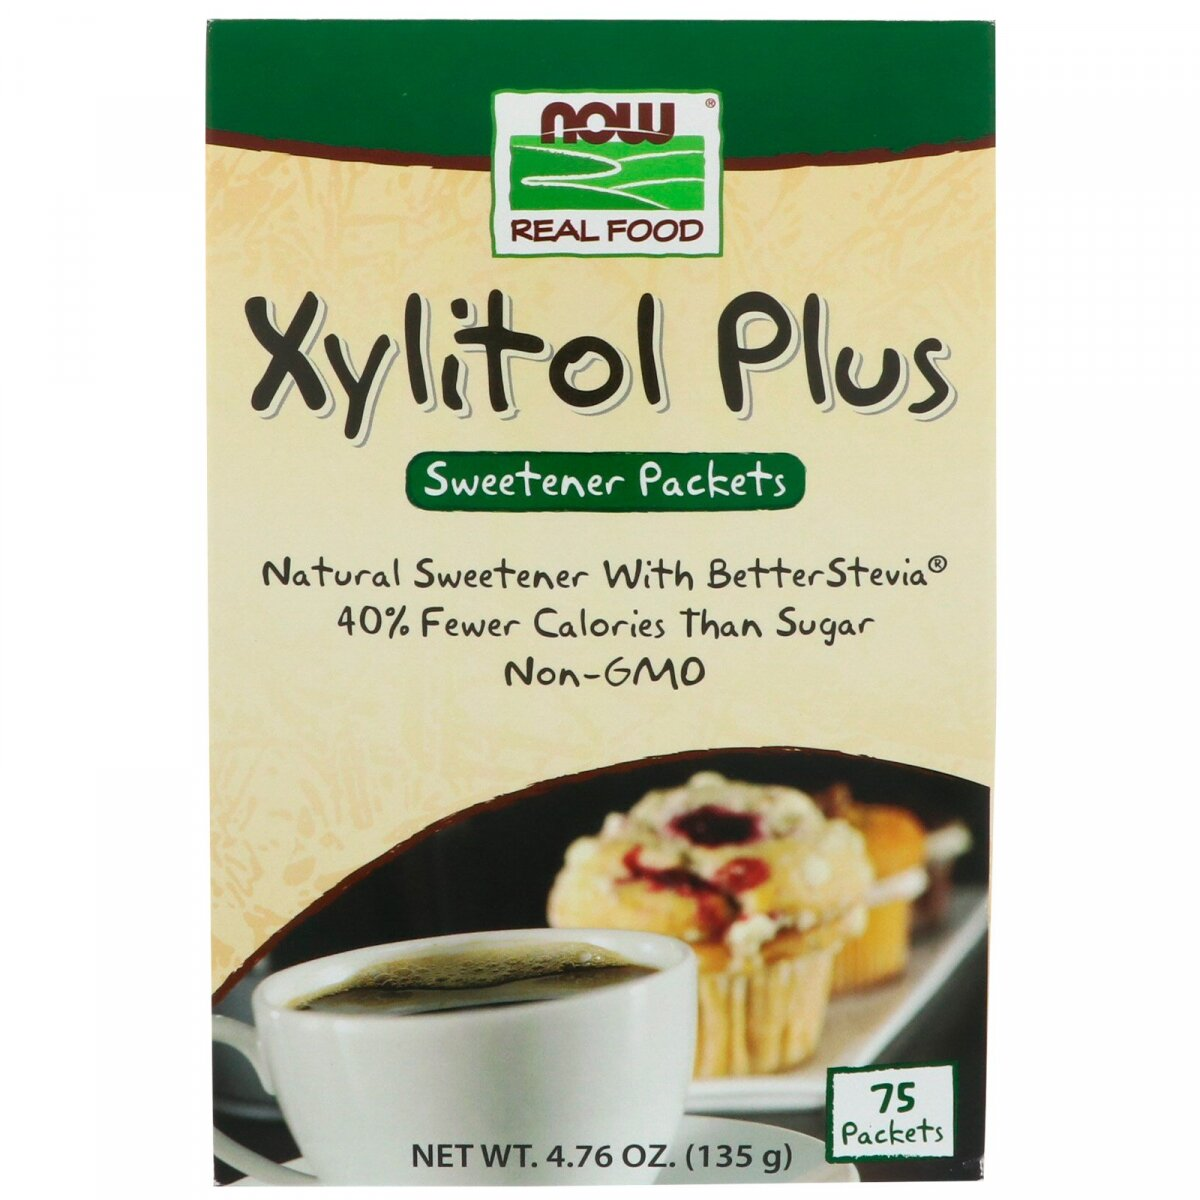 Ксилит сахарозаменитель, плюс, Xylitol Plus, Now Foods, 75 пакетов, 135 г